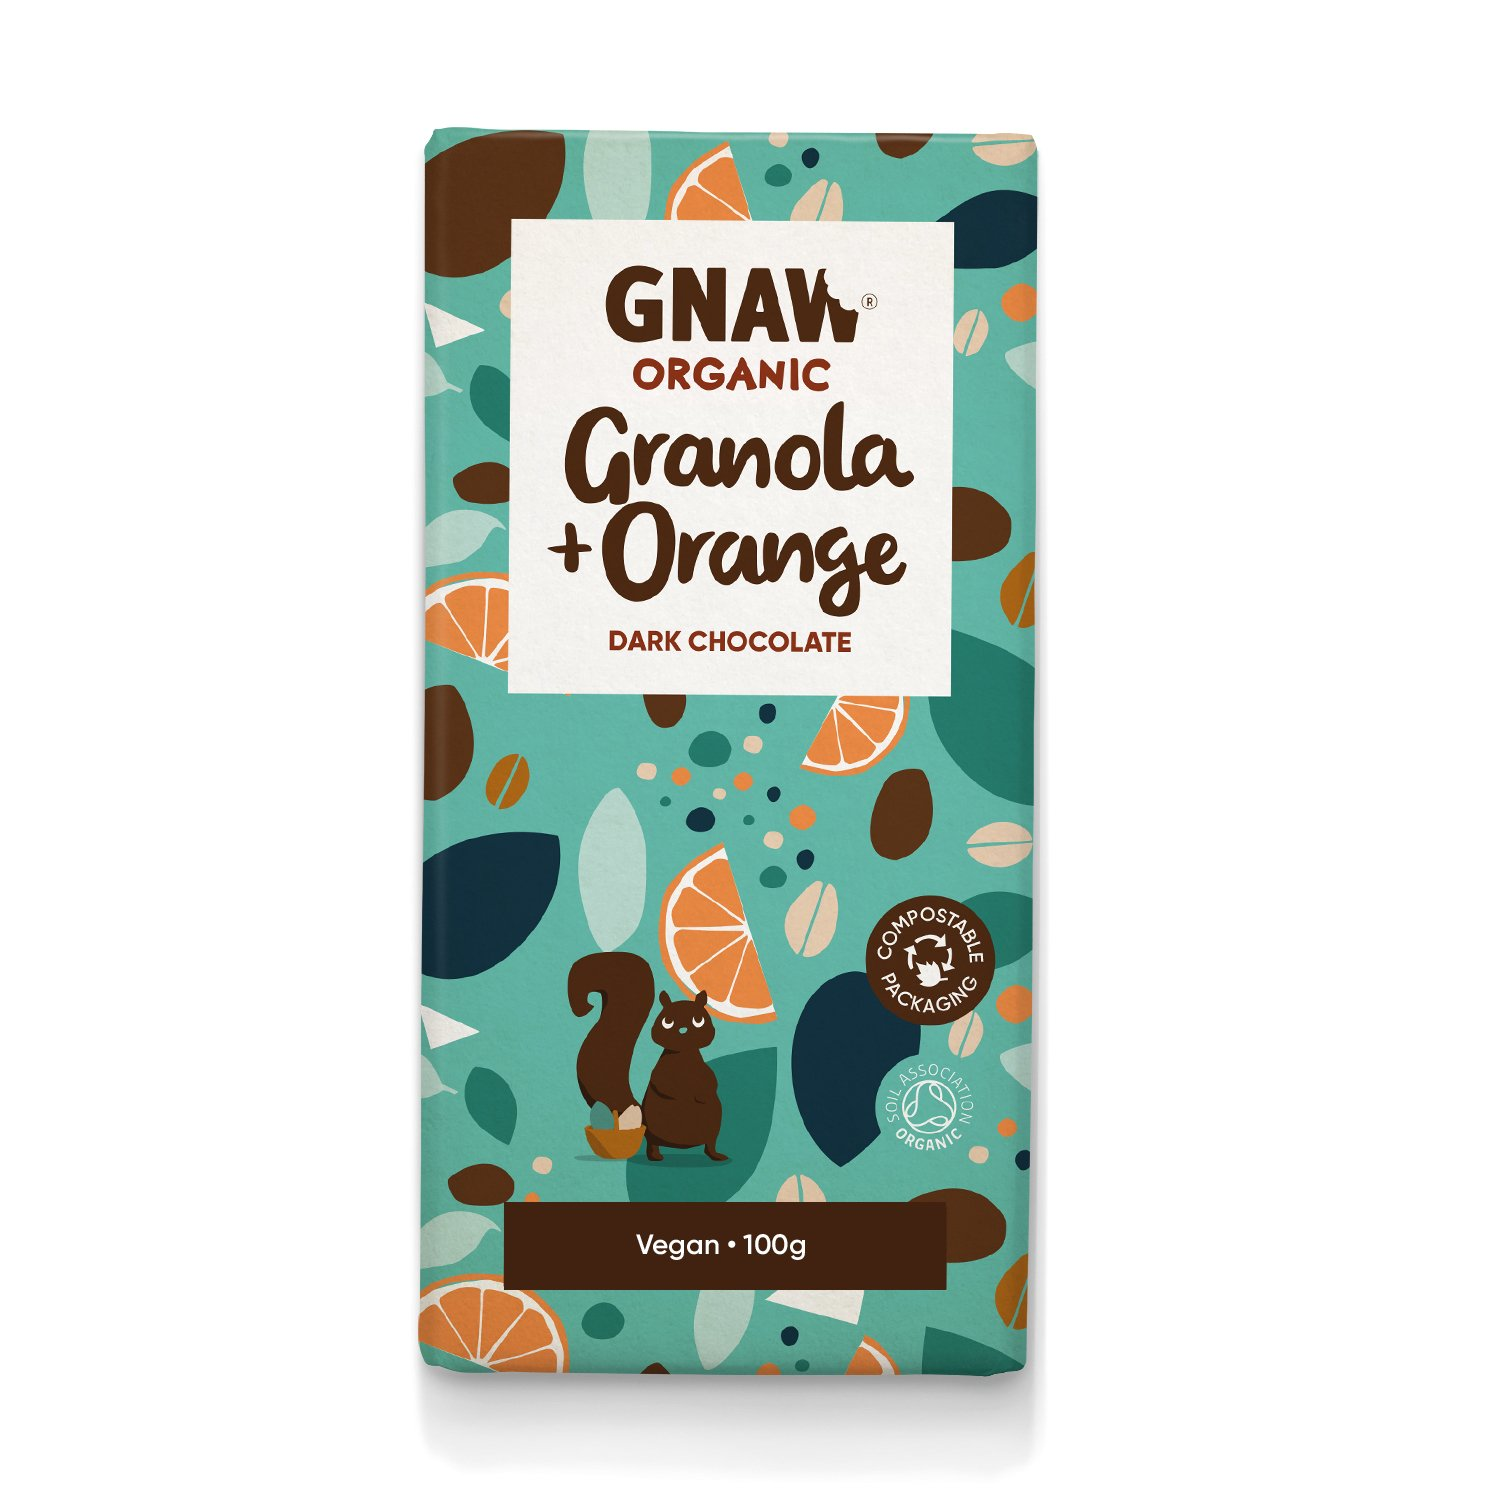 Organic Dark Chocolate With Orange & Granola 100g